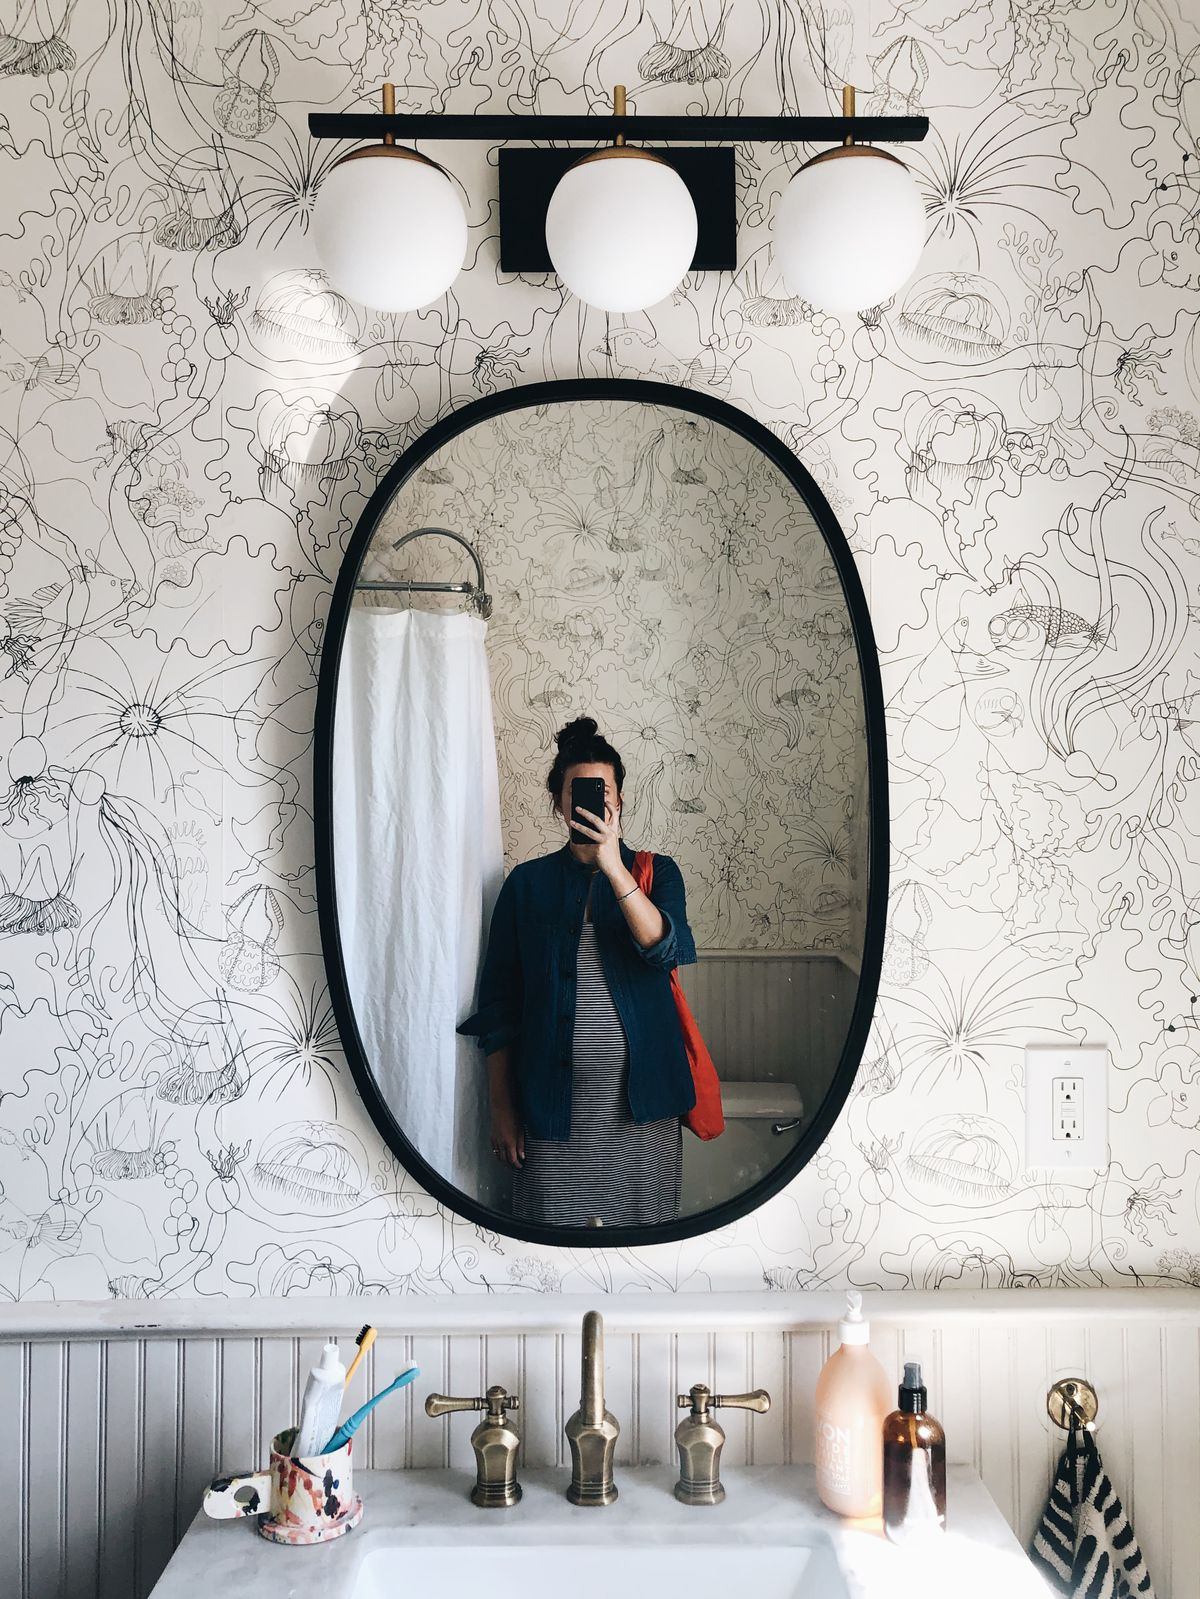 A woman stands in front of an oval bathroom mirror with her cell phone covering her face. A wall sconce hangs above the mirror with three round bulbs against a simple white wallpaper with black etchings.